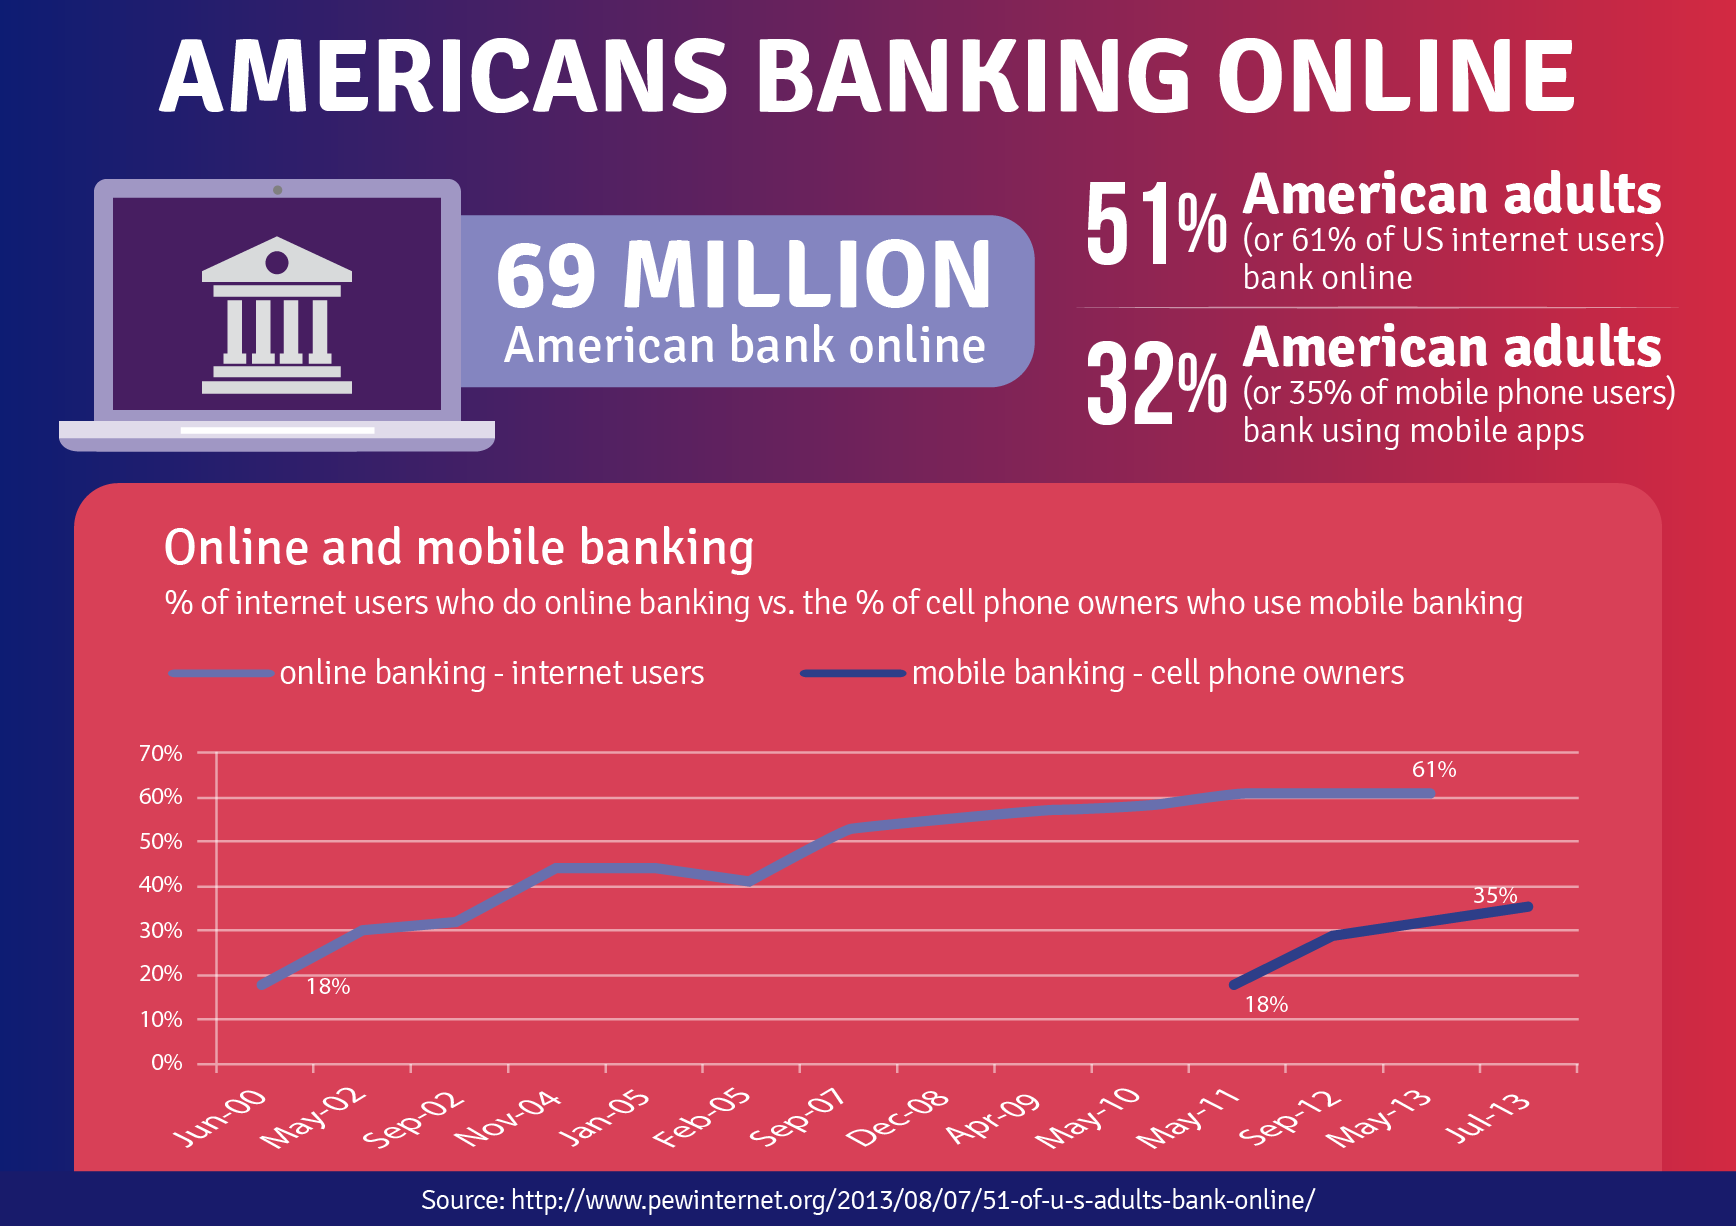 69 Million americans bank online